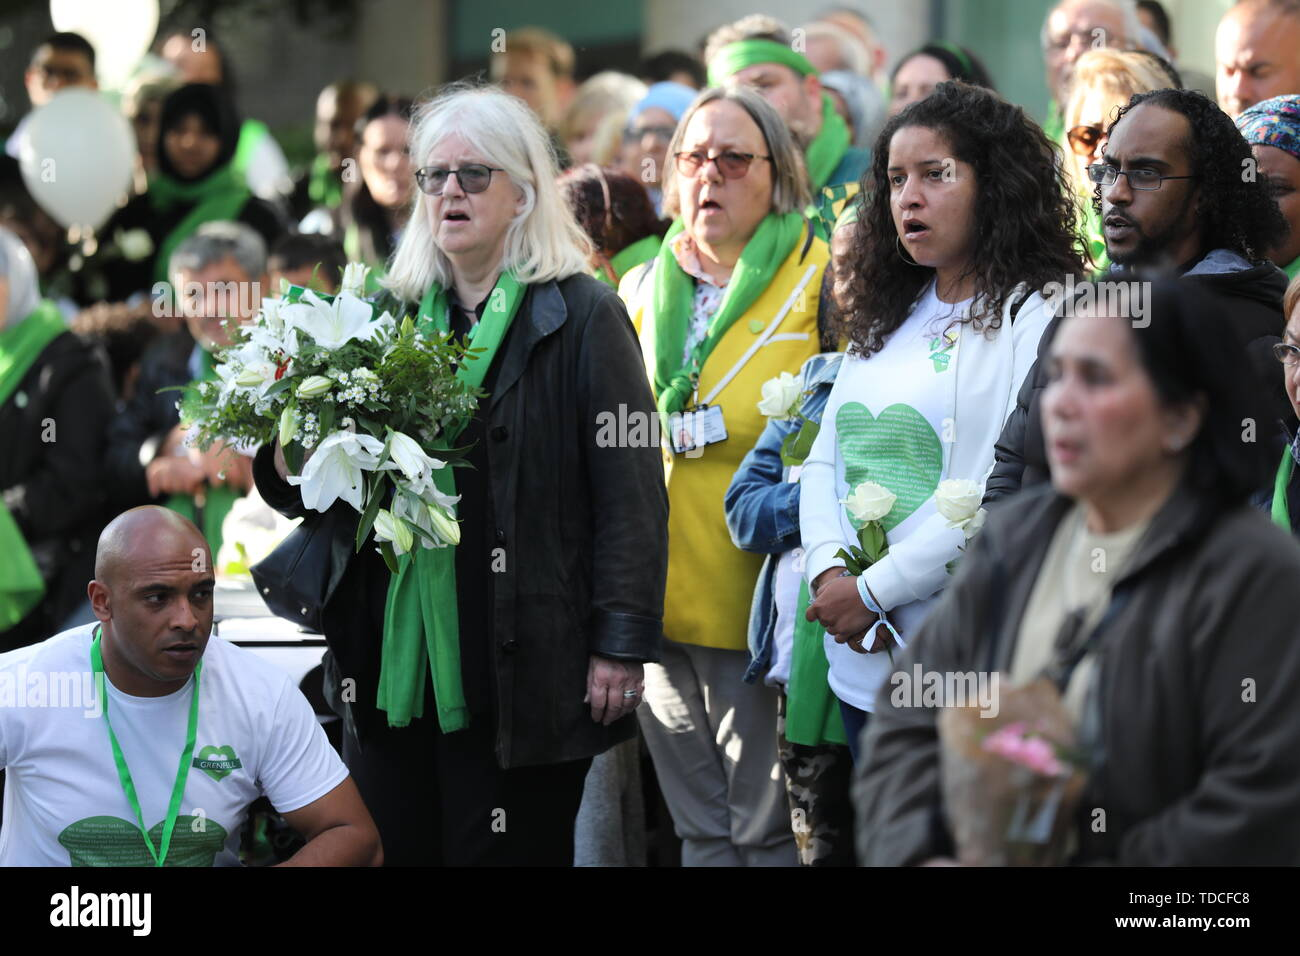 Family and friends of the 72 people who lost their lives in the Grenfell Tower block sing to a choir accompaniment ahead of a wreath laying ceremony outside Grenfell Tower, London, to mark the two-year anniversary. - Stock Image